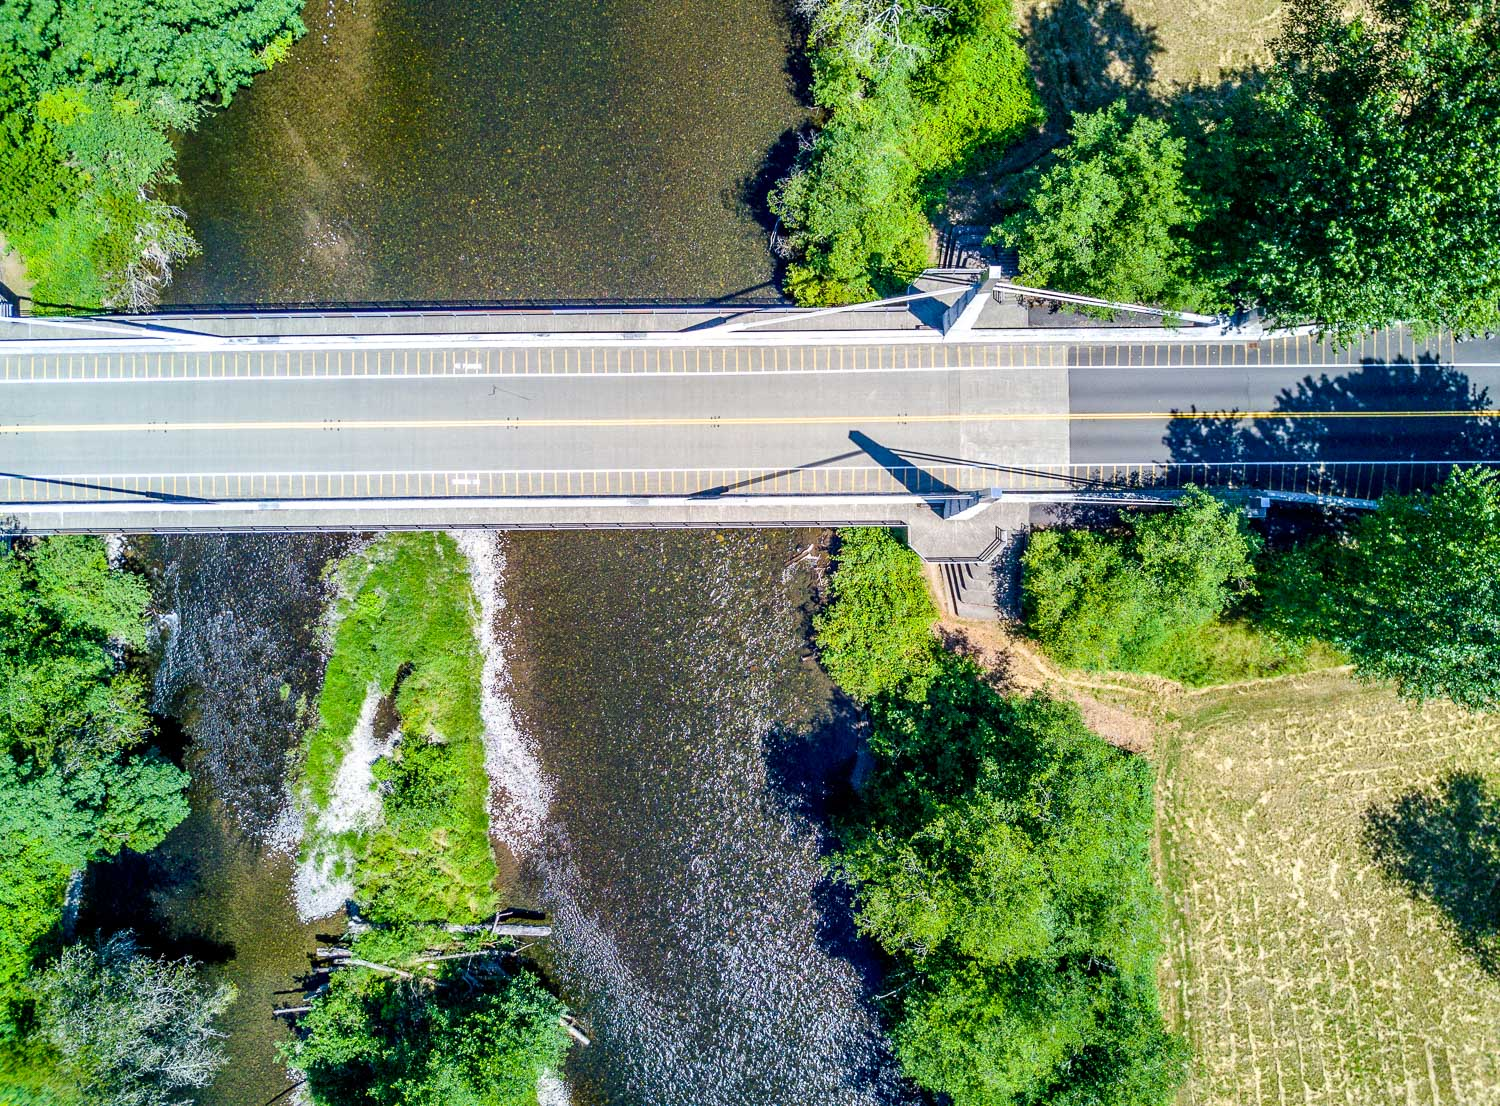 Lessons Learned from Drone photography 5